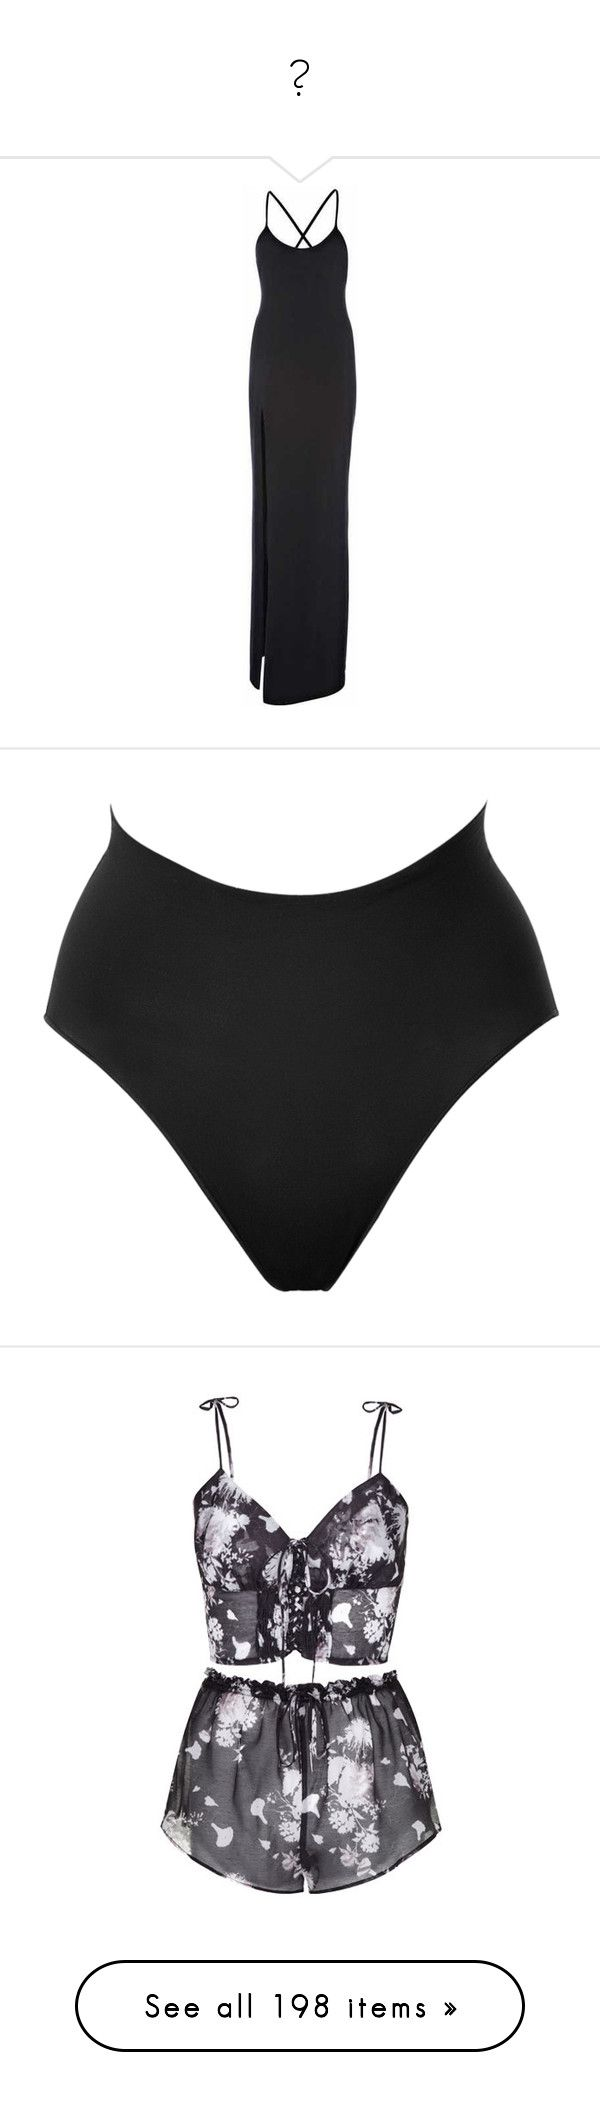 """""""🔥"""" by idc-baby ❤ liked on Polyvore featuring dresses, intimates, lingerie, underwear, bottoms, shorts, panties, black, high-waisted lingerie and spanx lingerie"""